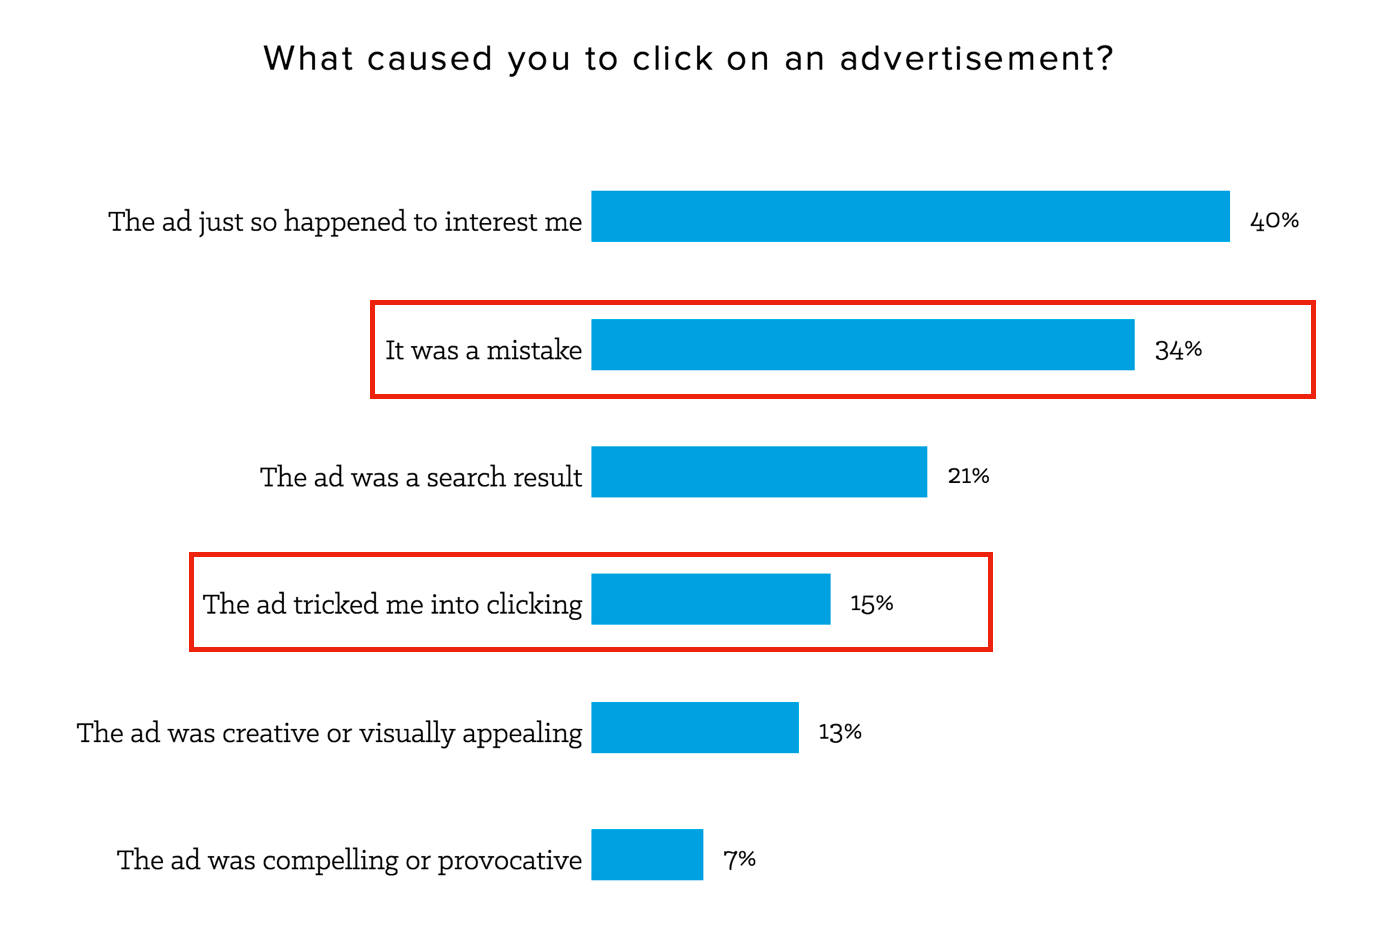 What caused customers to click on ads survey results